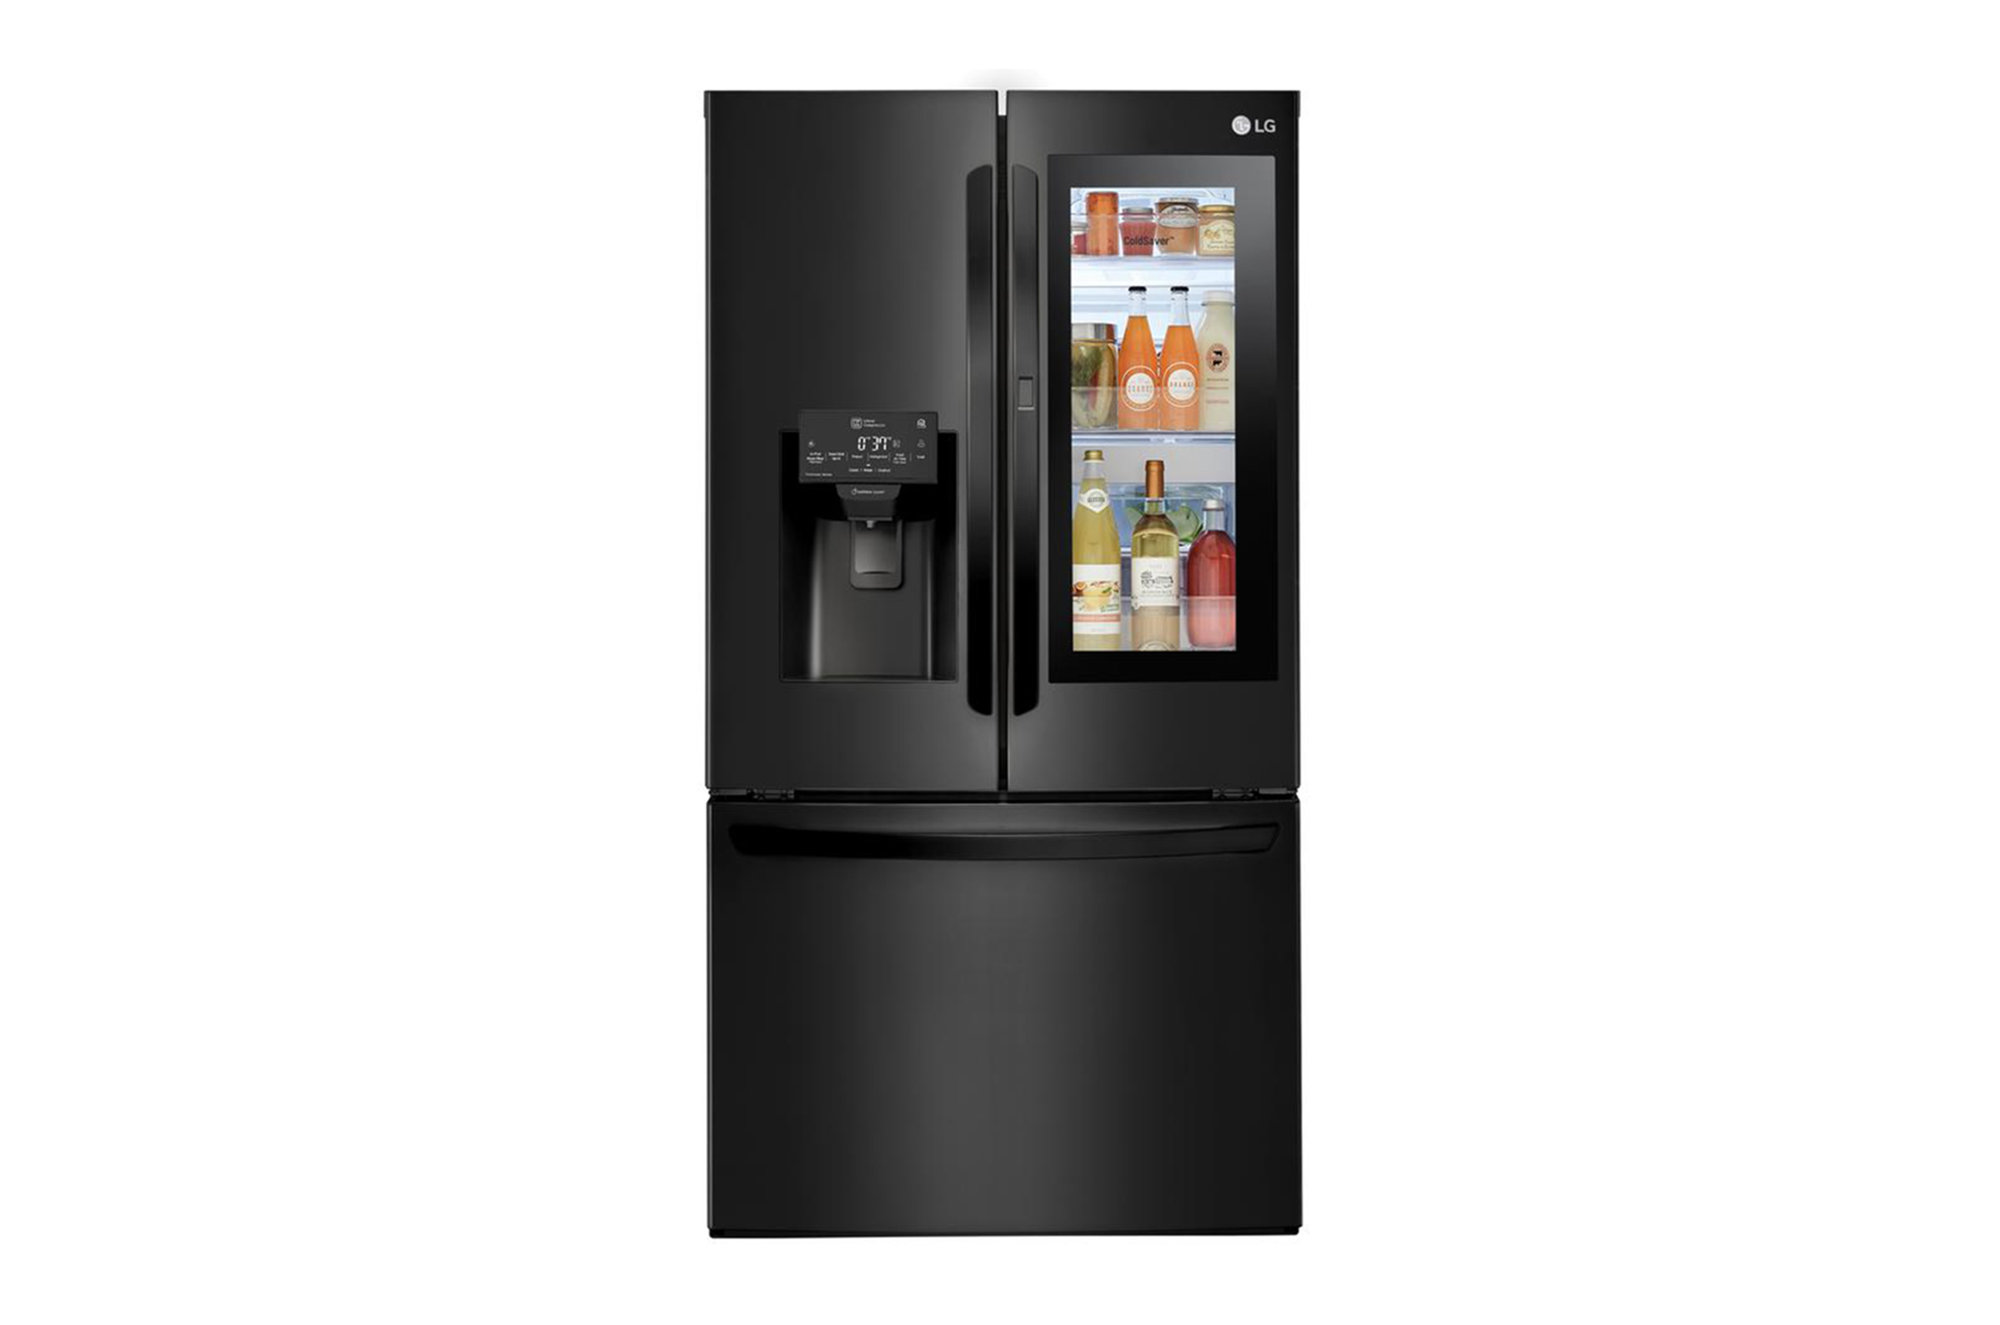 Best Black Friday And Cyber Monday Deals On Household